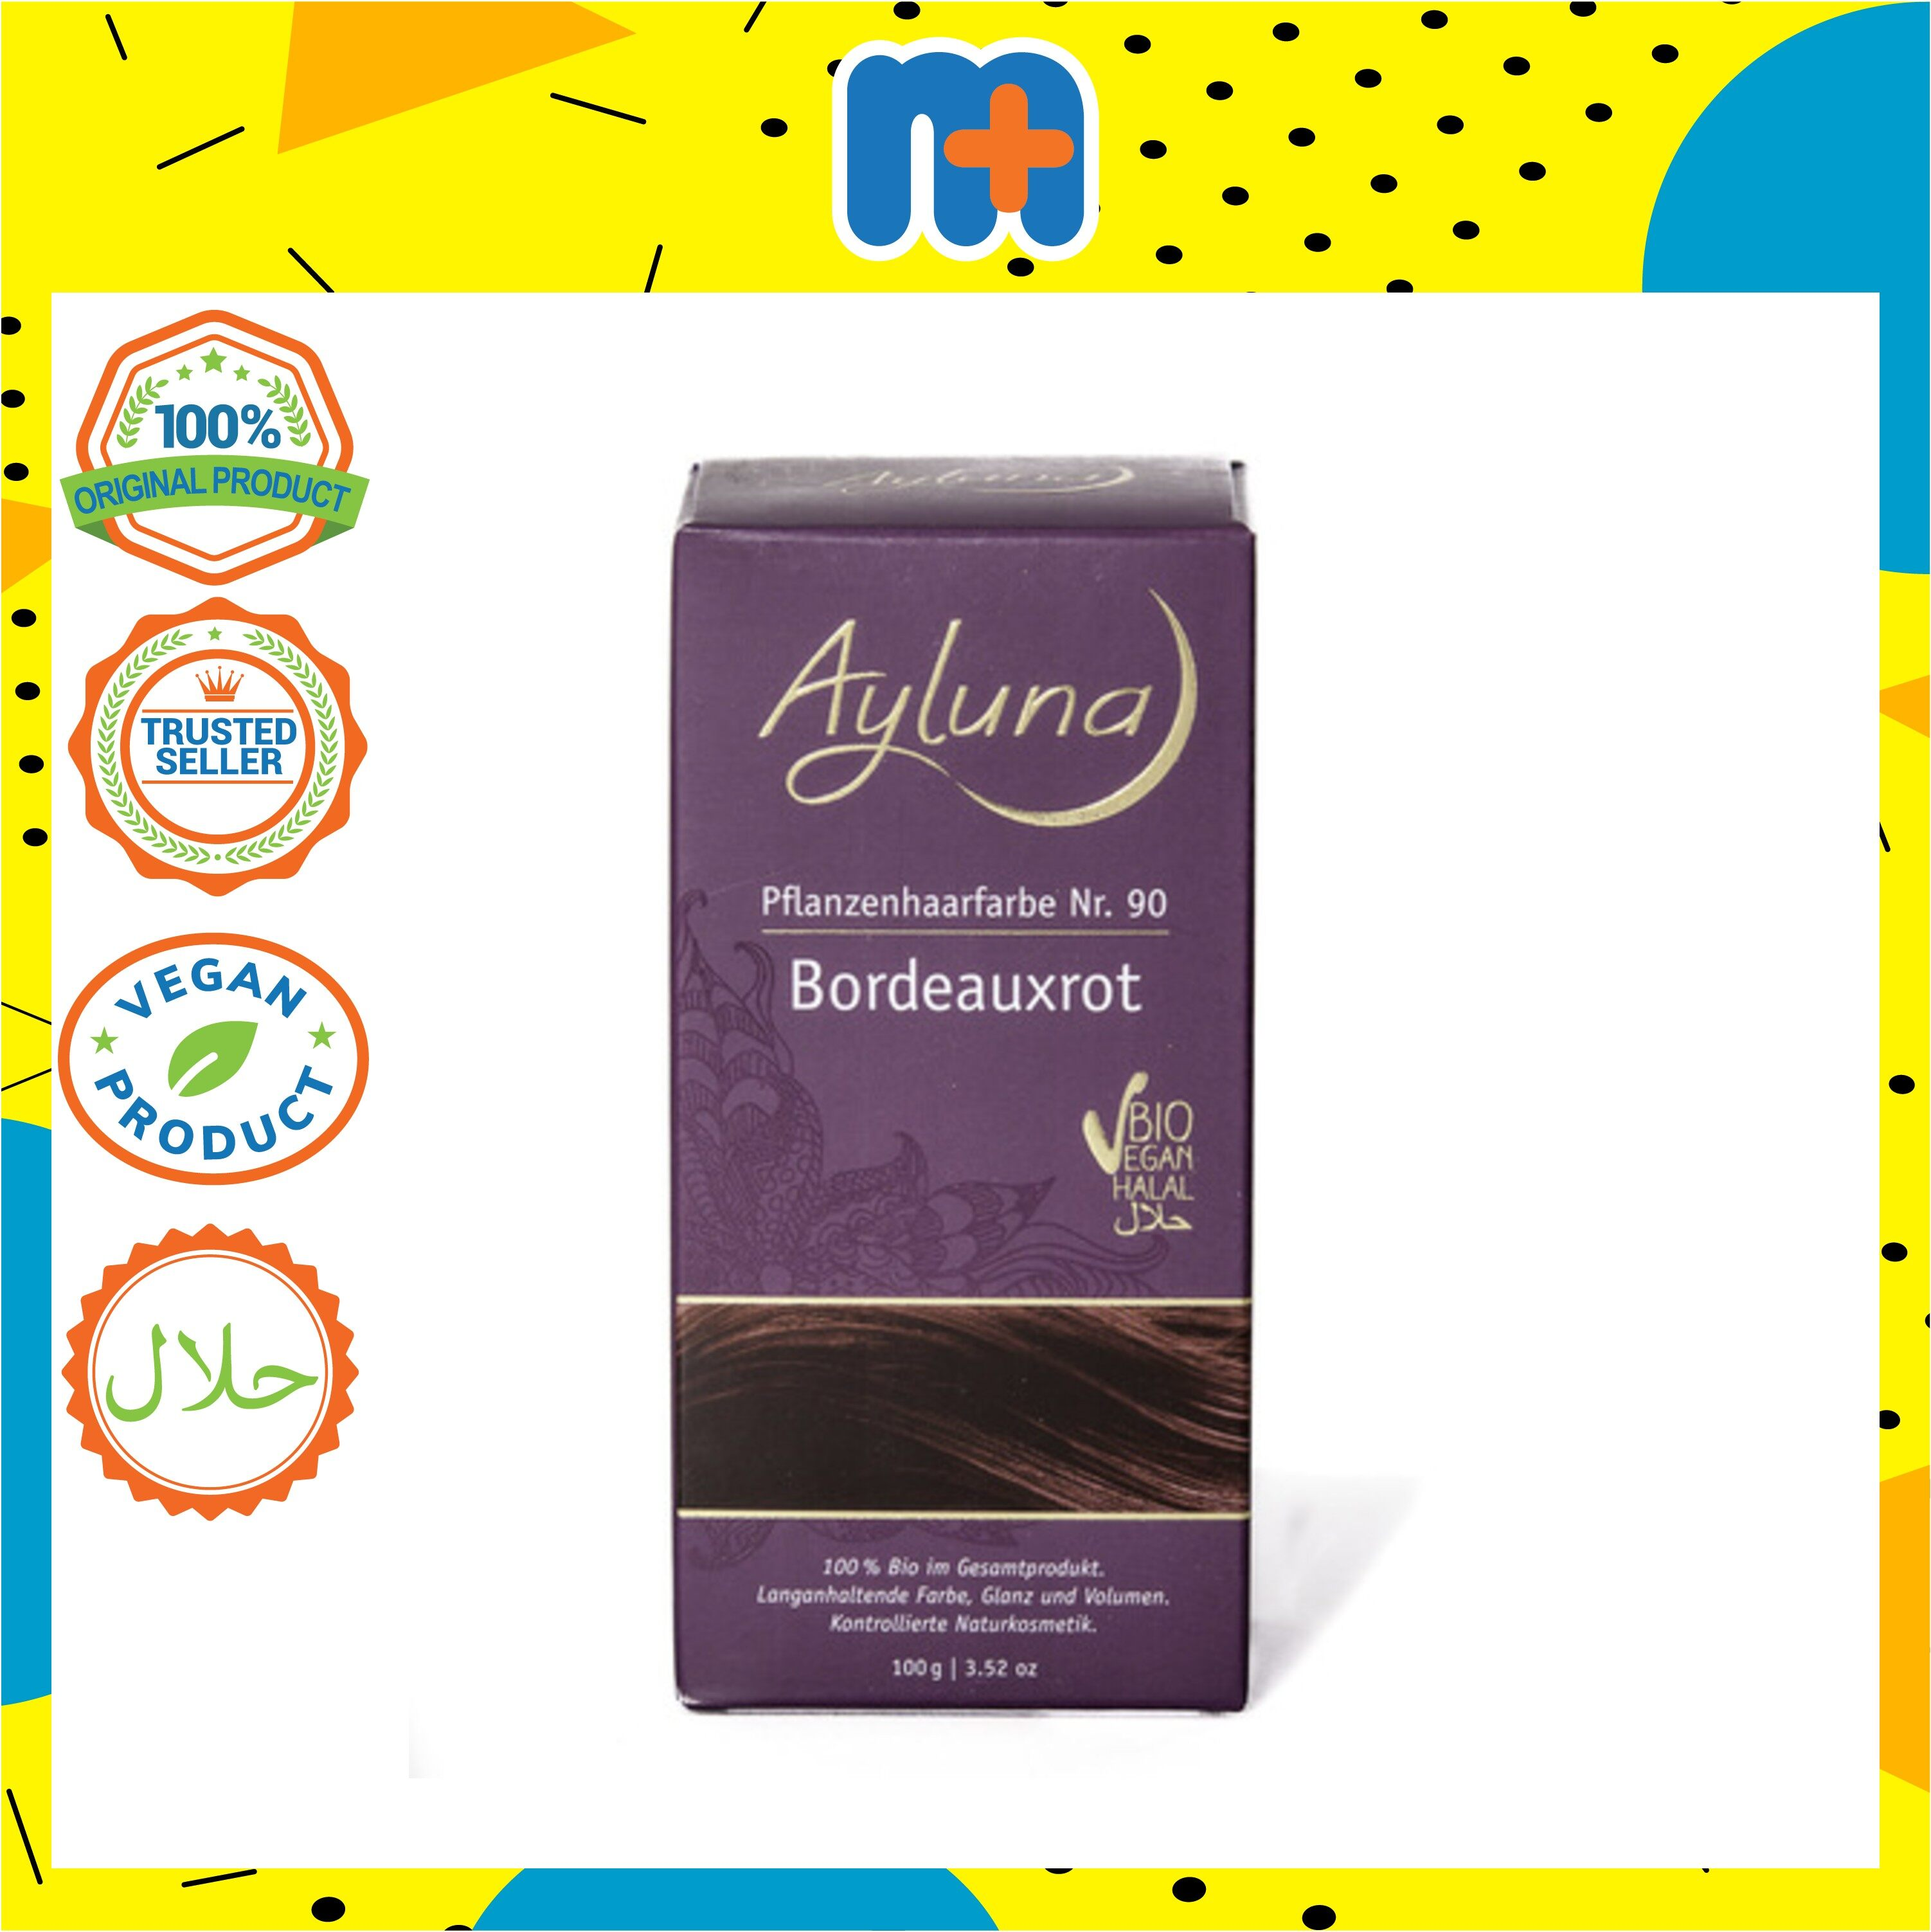 [MPLUS] AYLUNA Organic Plant Based Hair-Dye Bordeaux Red 100g